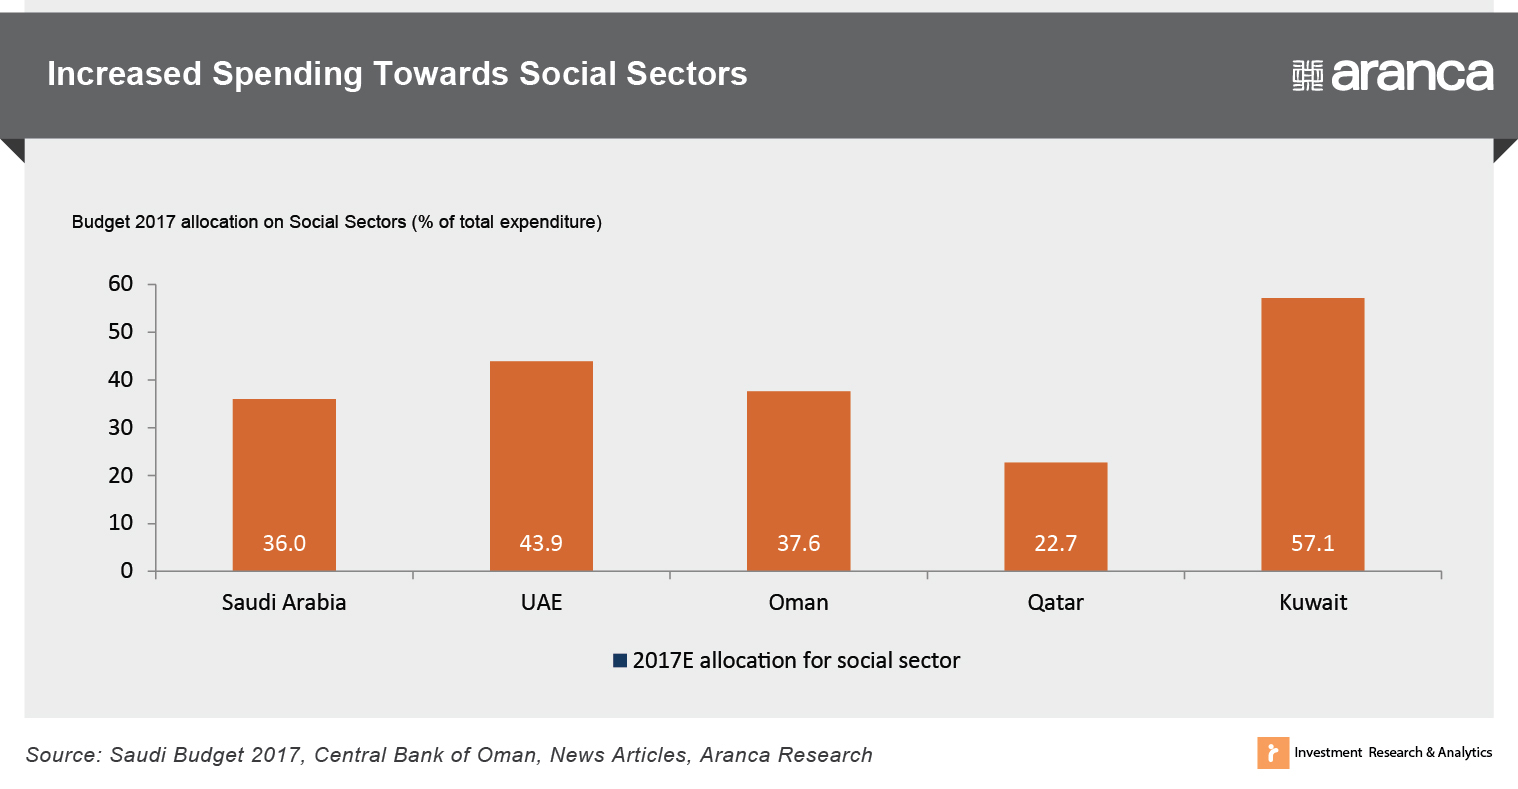 Increased Spending Towards Social Sectors